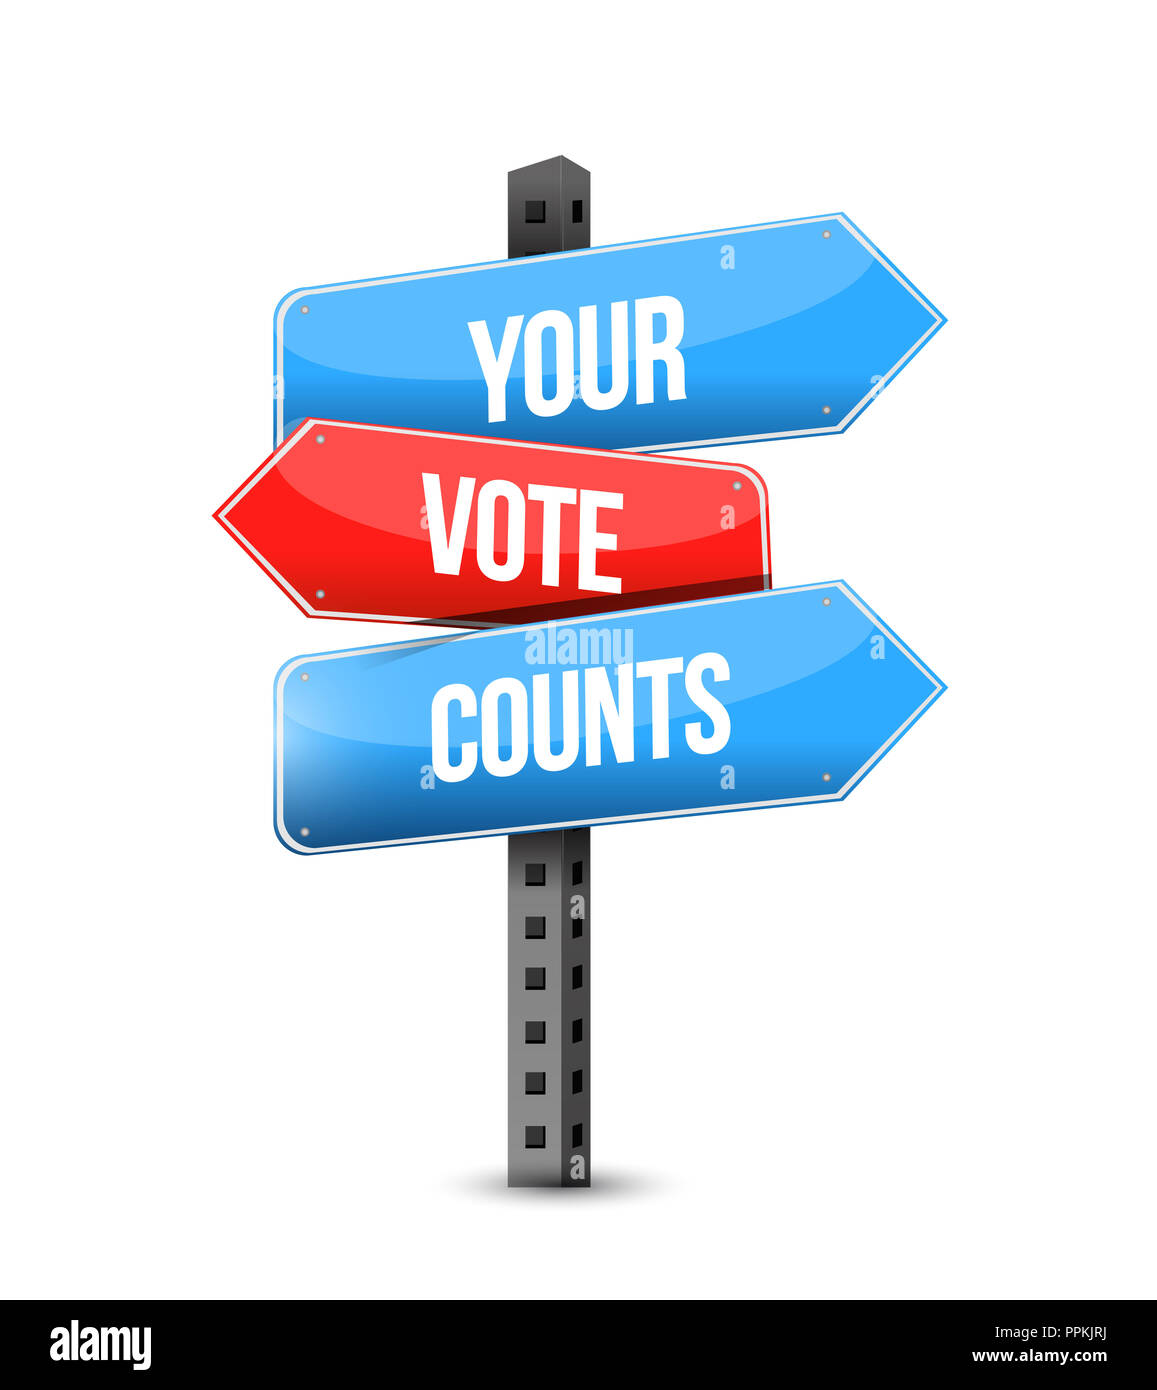 Your Vote Counts Multiple Destination Color Street Sign Isolated